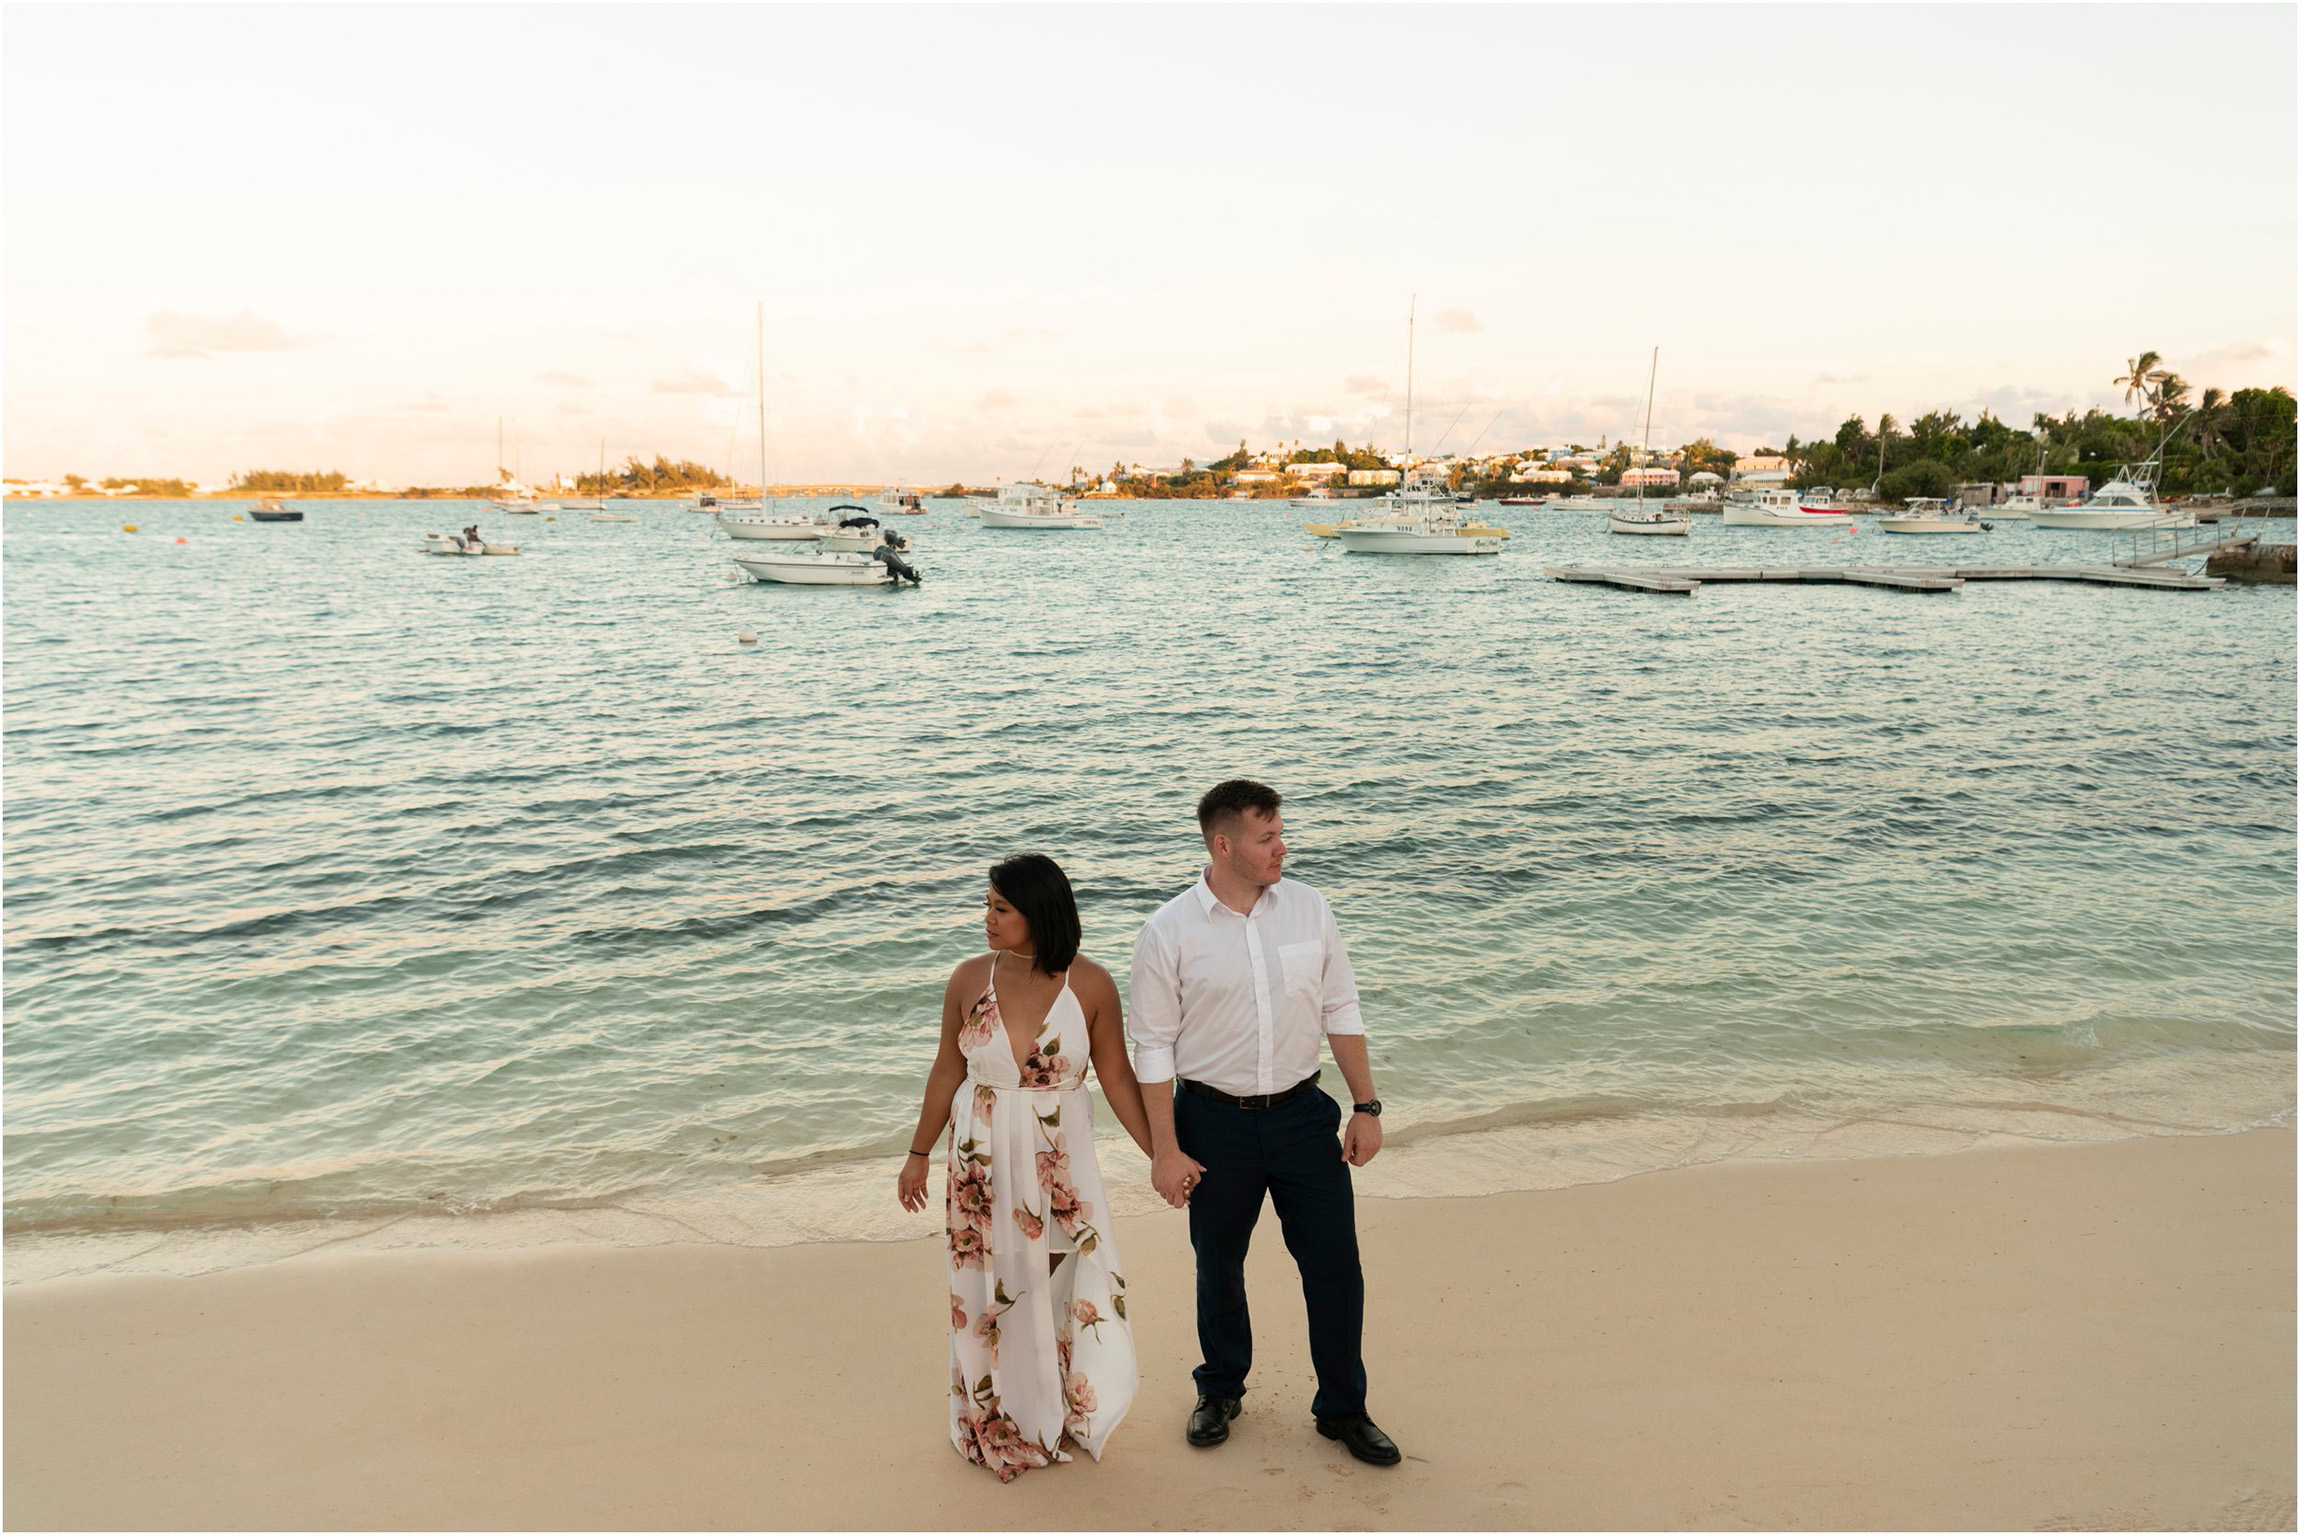 ©FianderFoto_Bermuda Photographer_Cambridge Beaches_Joanna_Kenneth_013.jpg